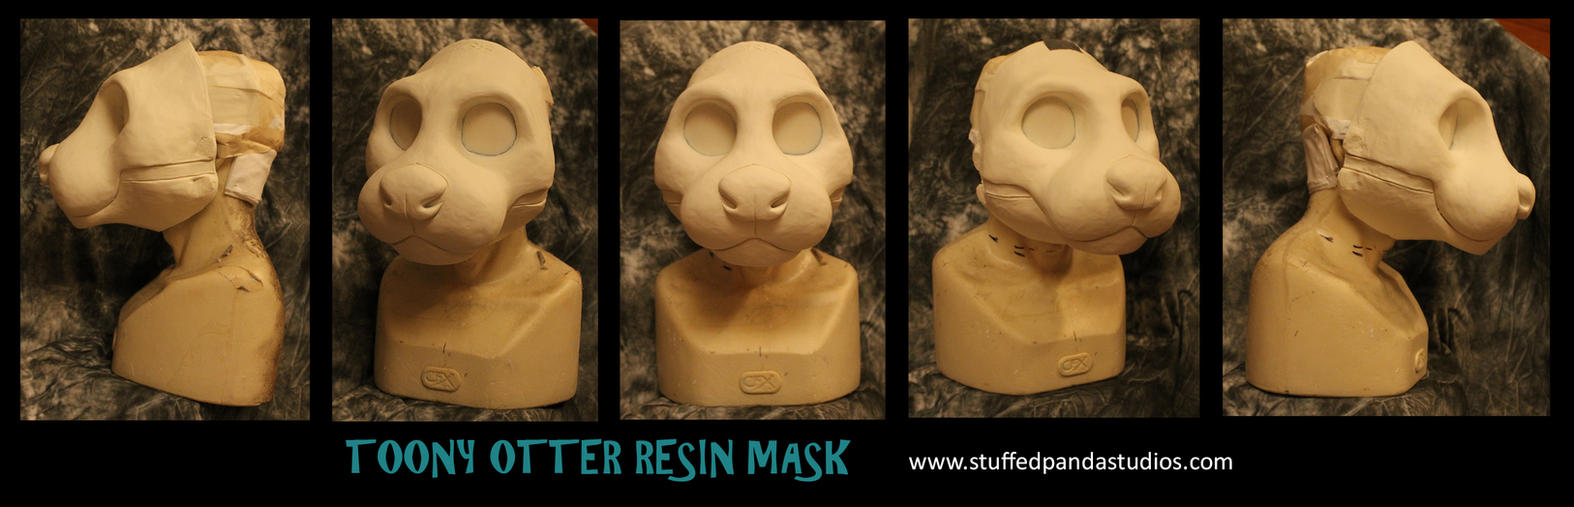 Toony Otter Resin Base by stuffedpanda-cosplay